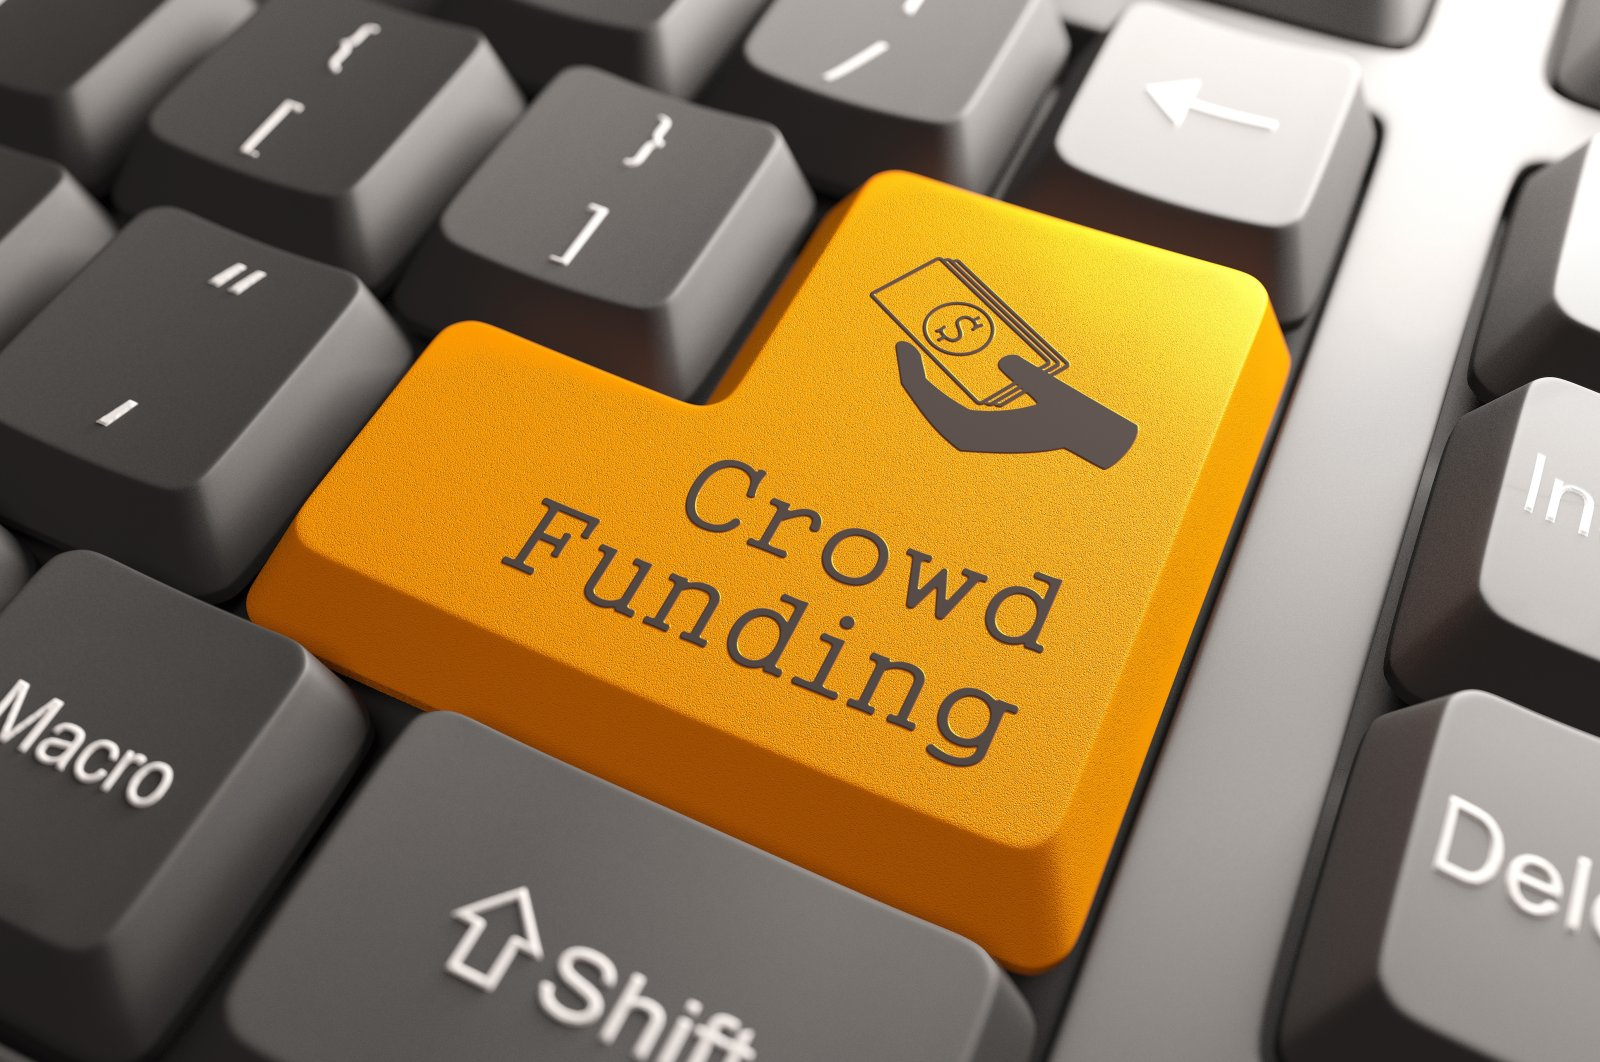 Currently, there are more than 2,000 crowdfunding platforms in the world, 10% of which are based in the U.S. (Shutterstock Photo)